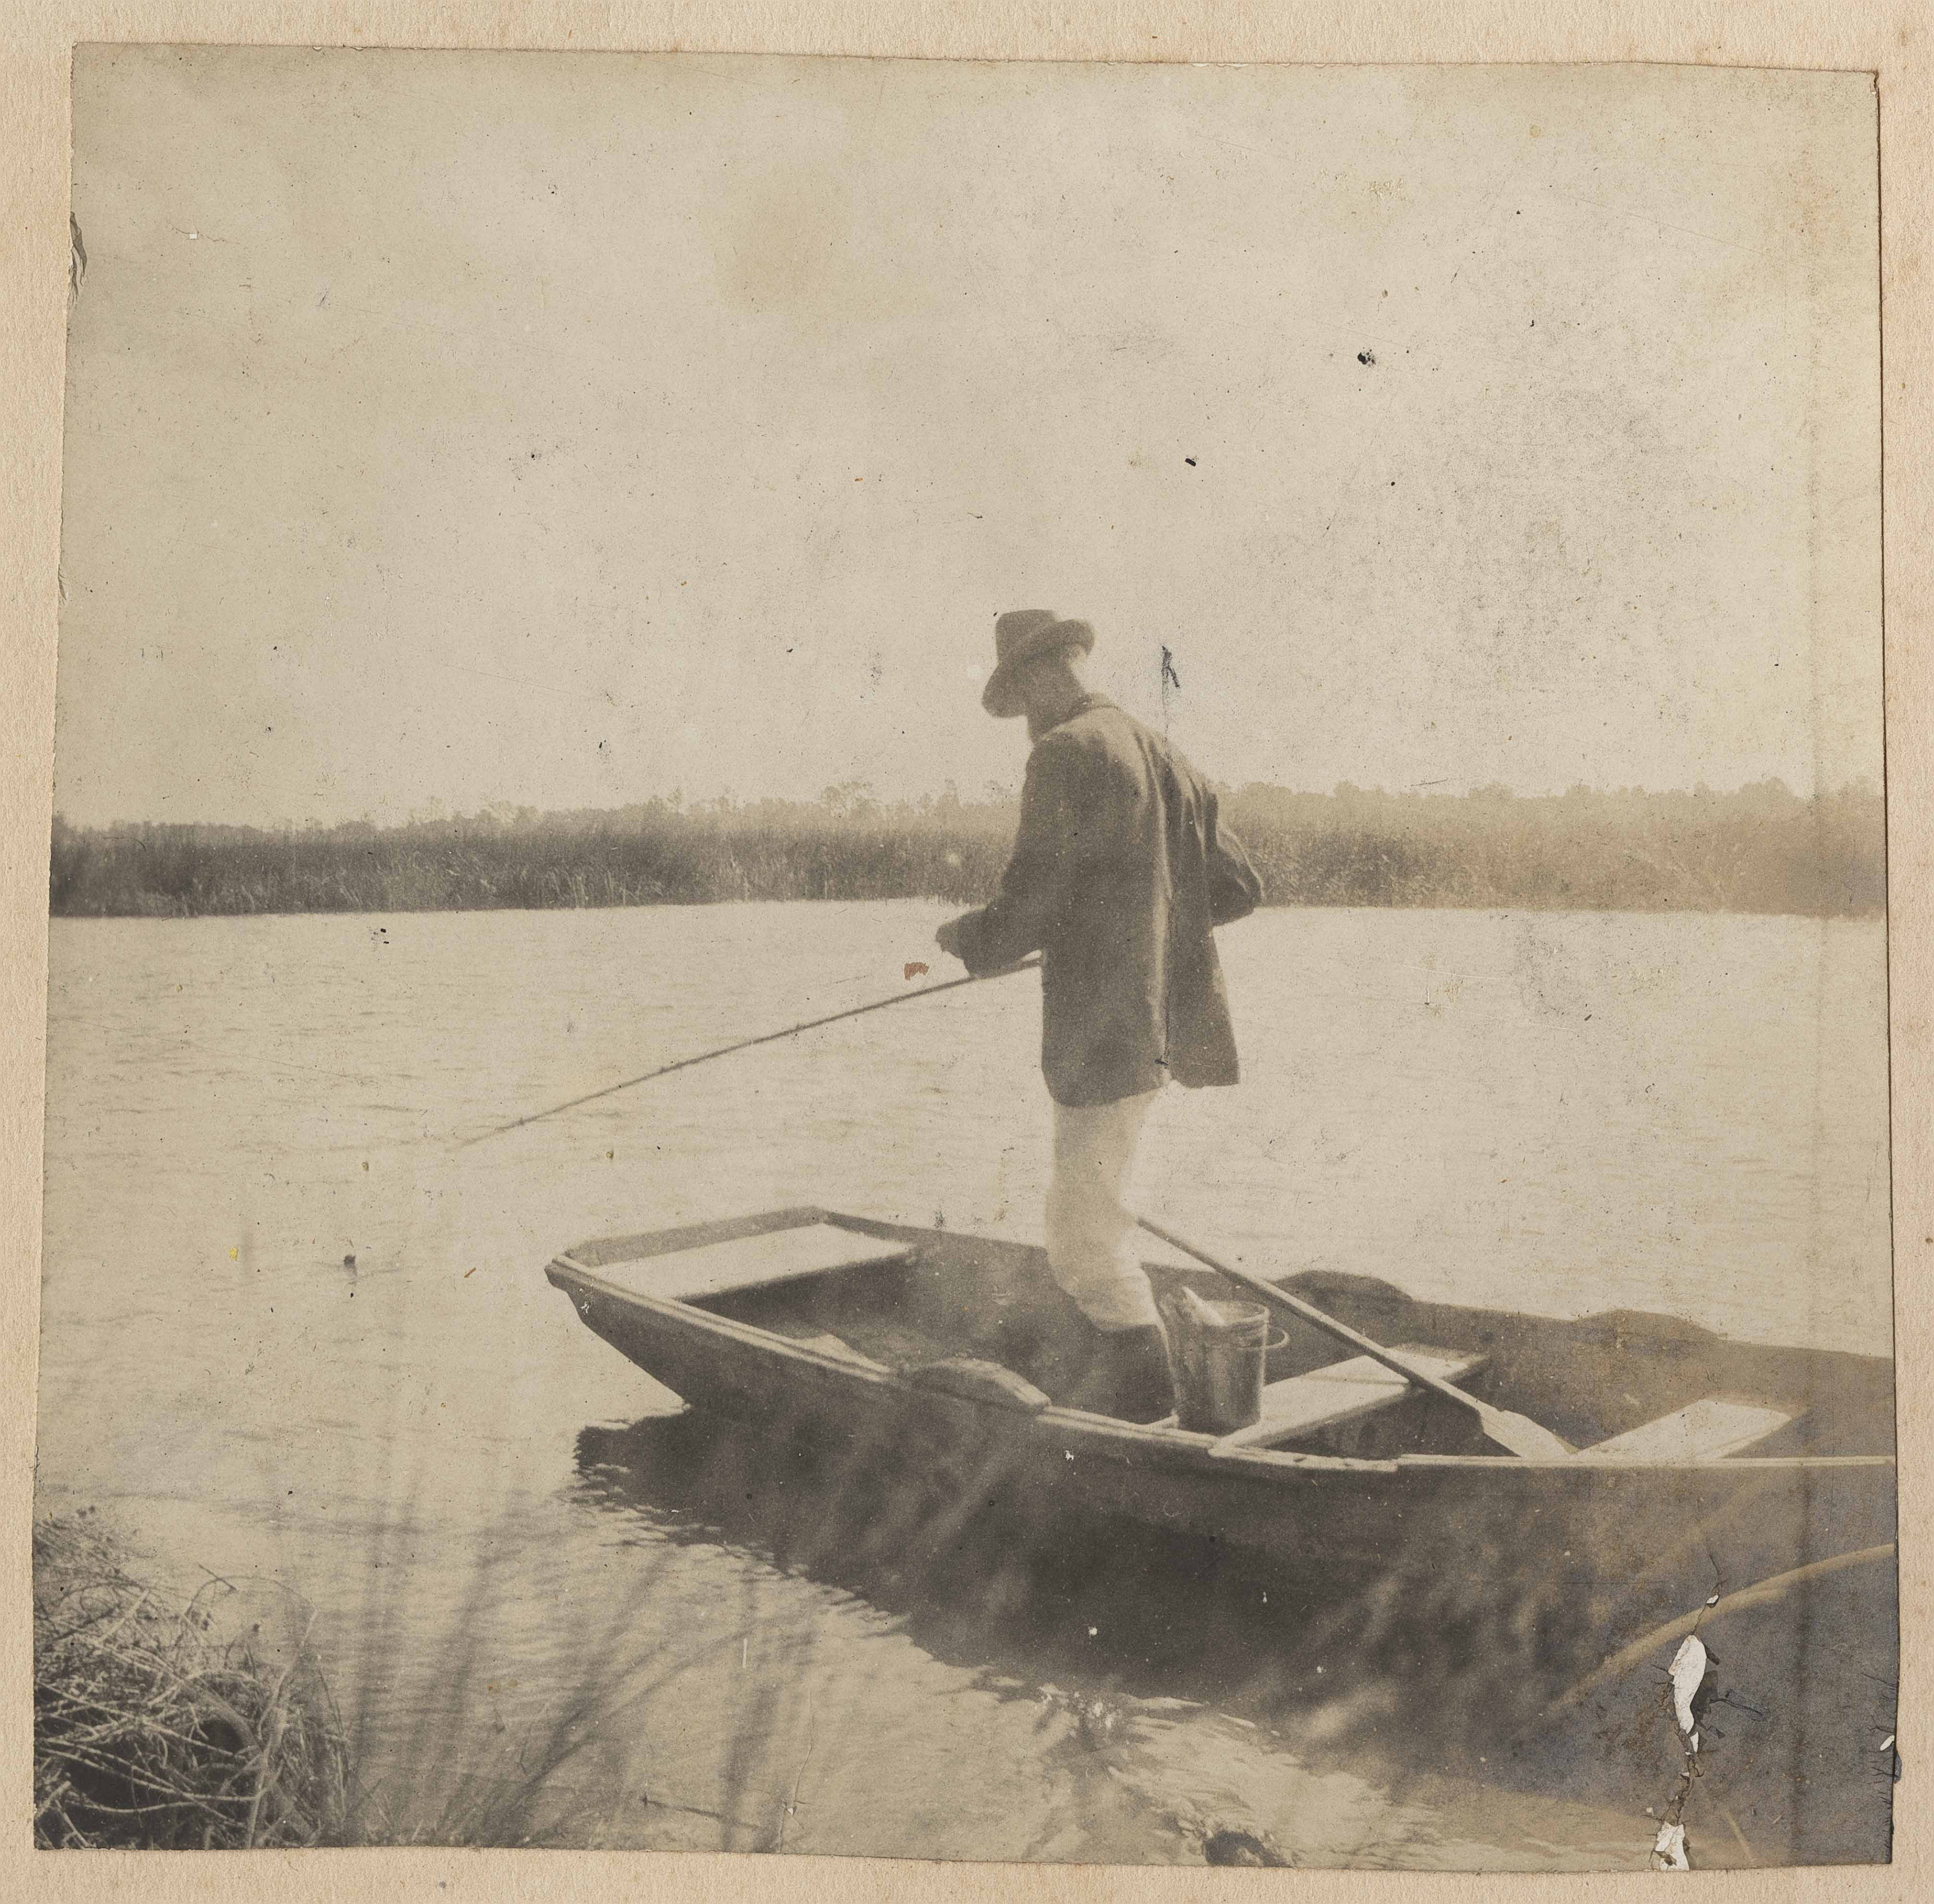 Man fishing from boat